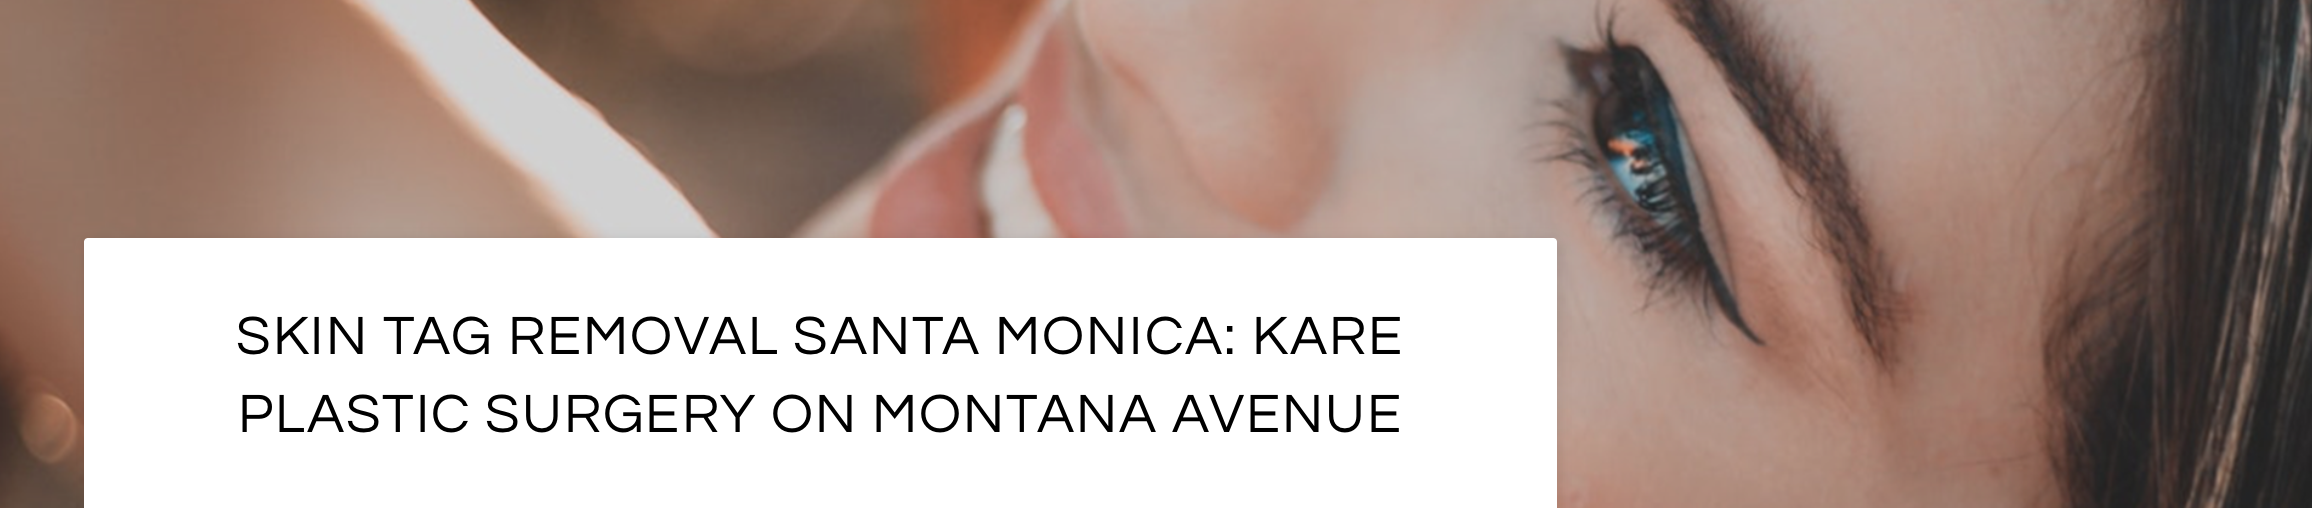 Skin tag removal in Santa Monica at Kare Plastic Surgery